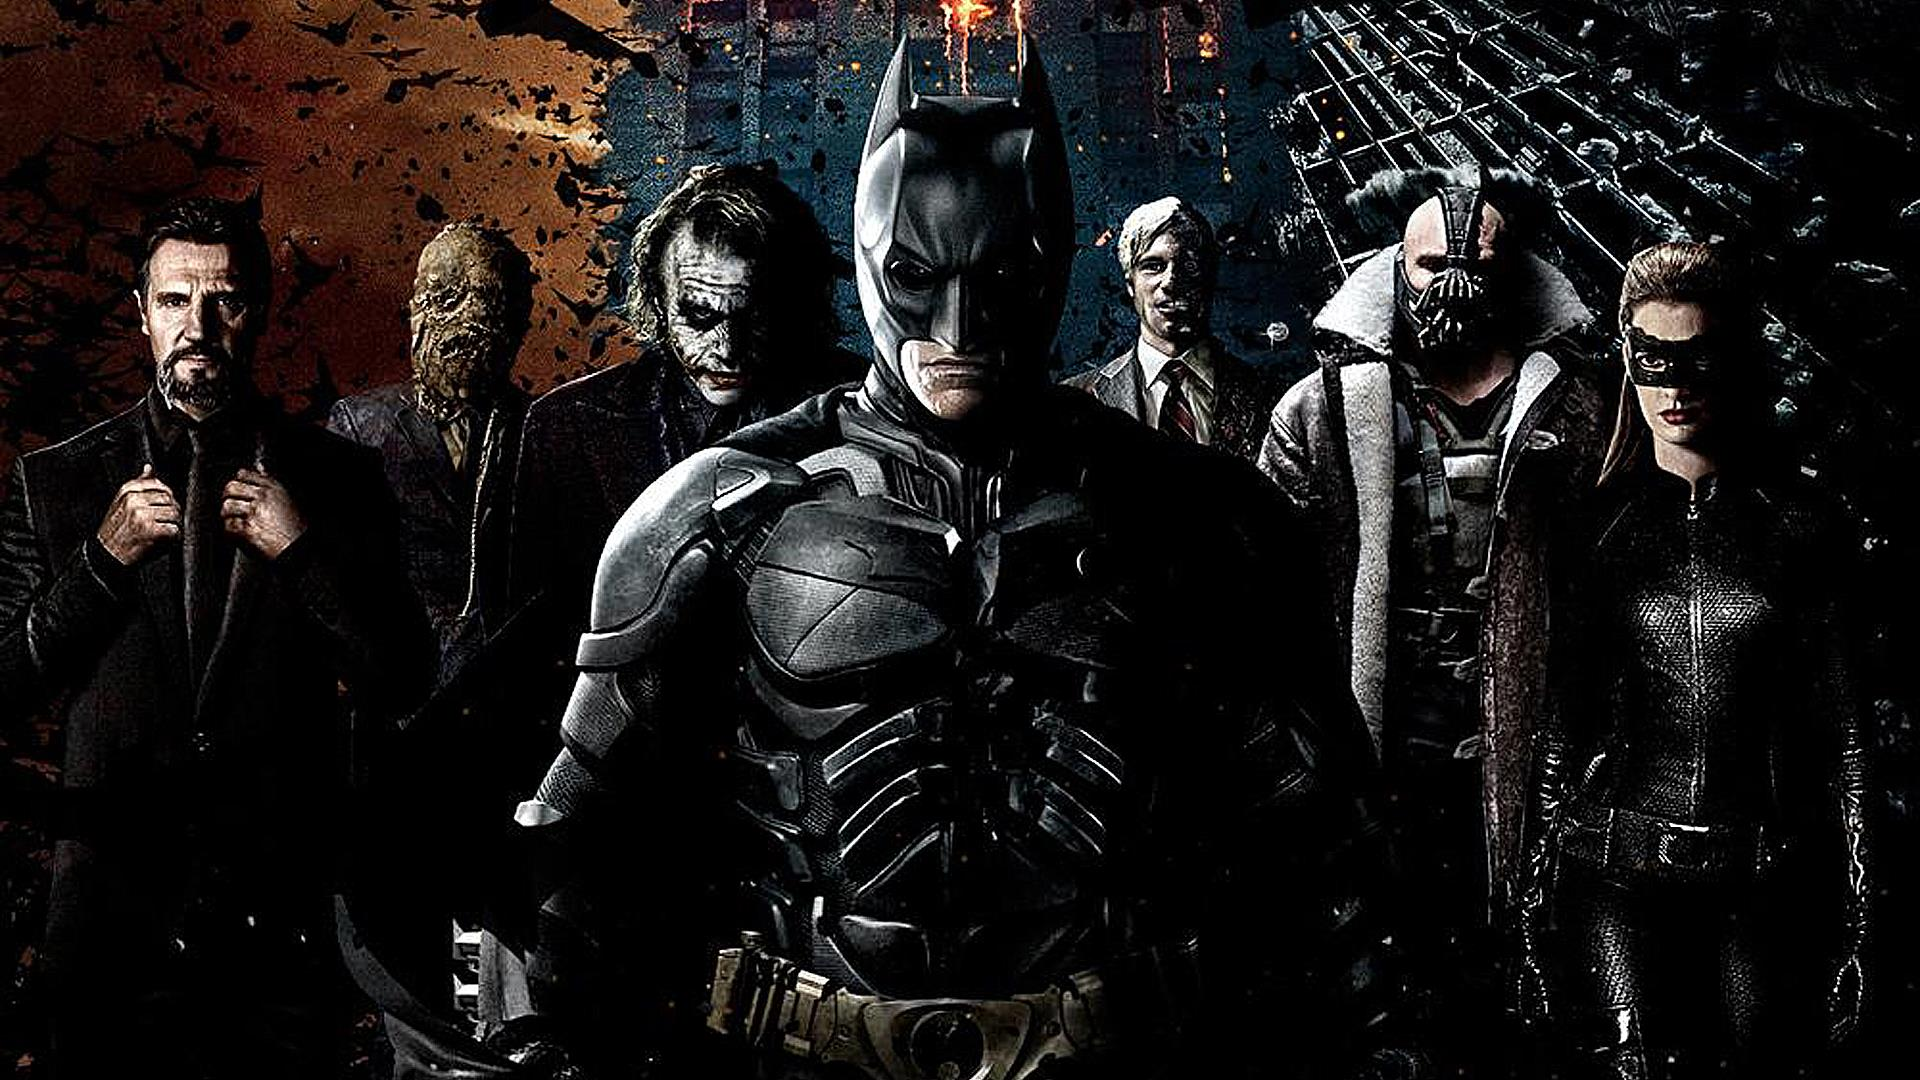 Free Download The Dark Knight Rises Computer Wallpapers